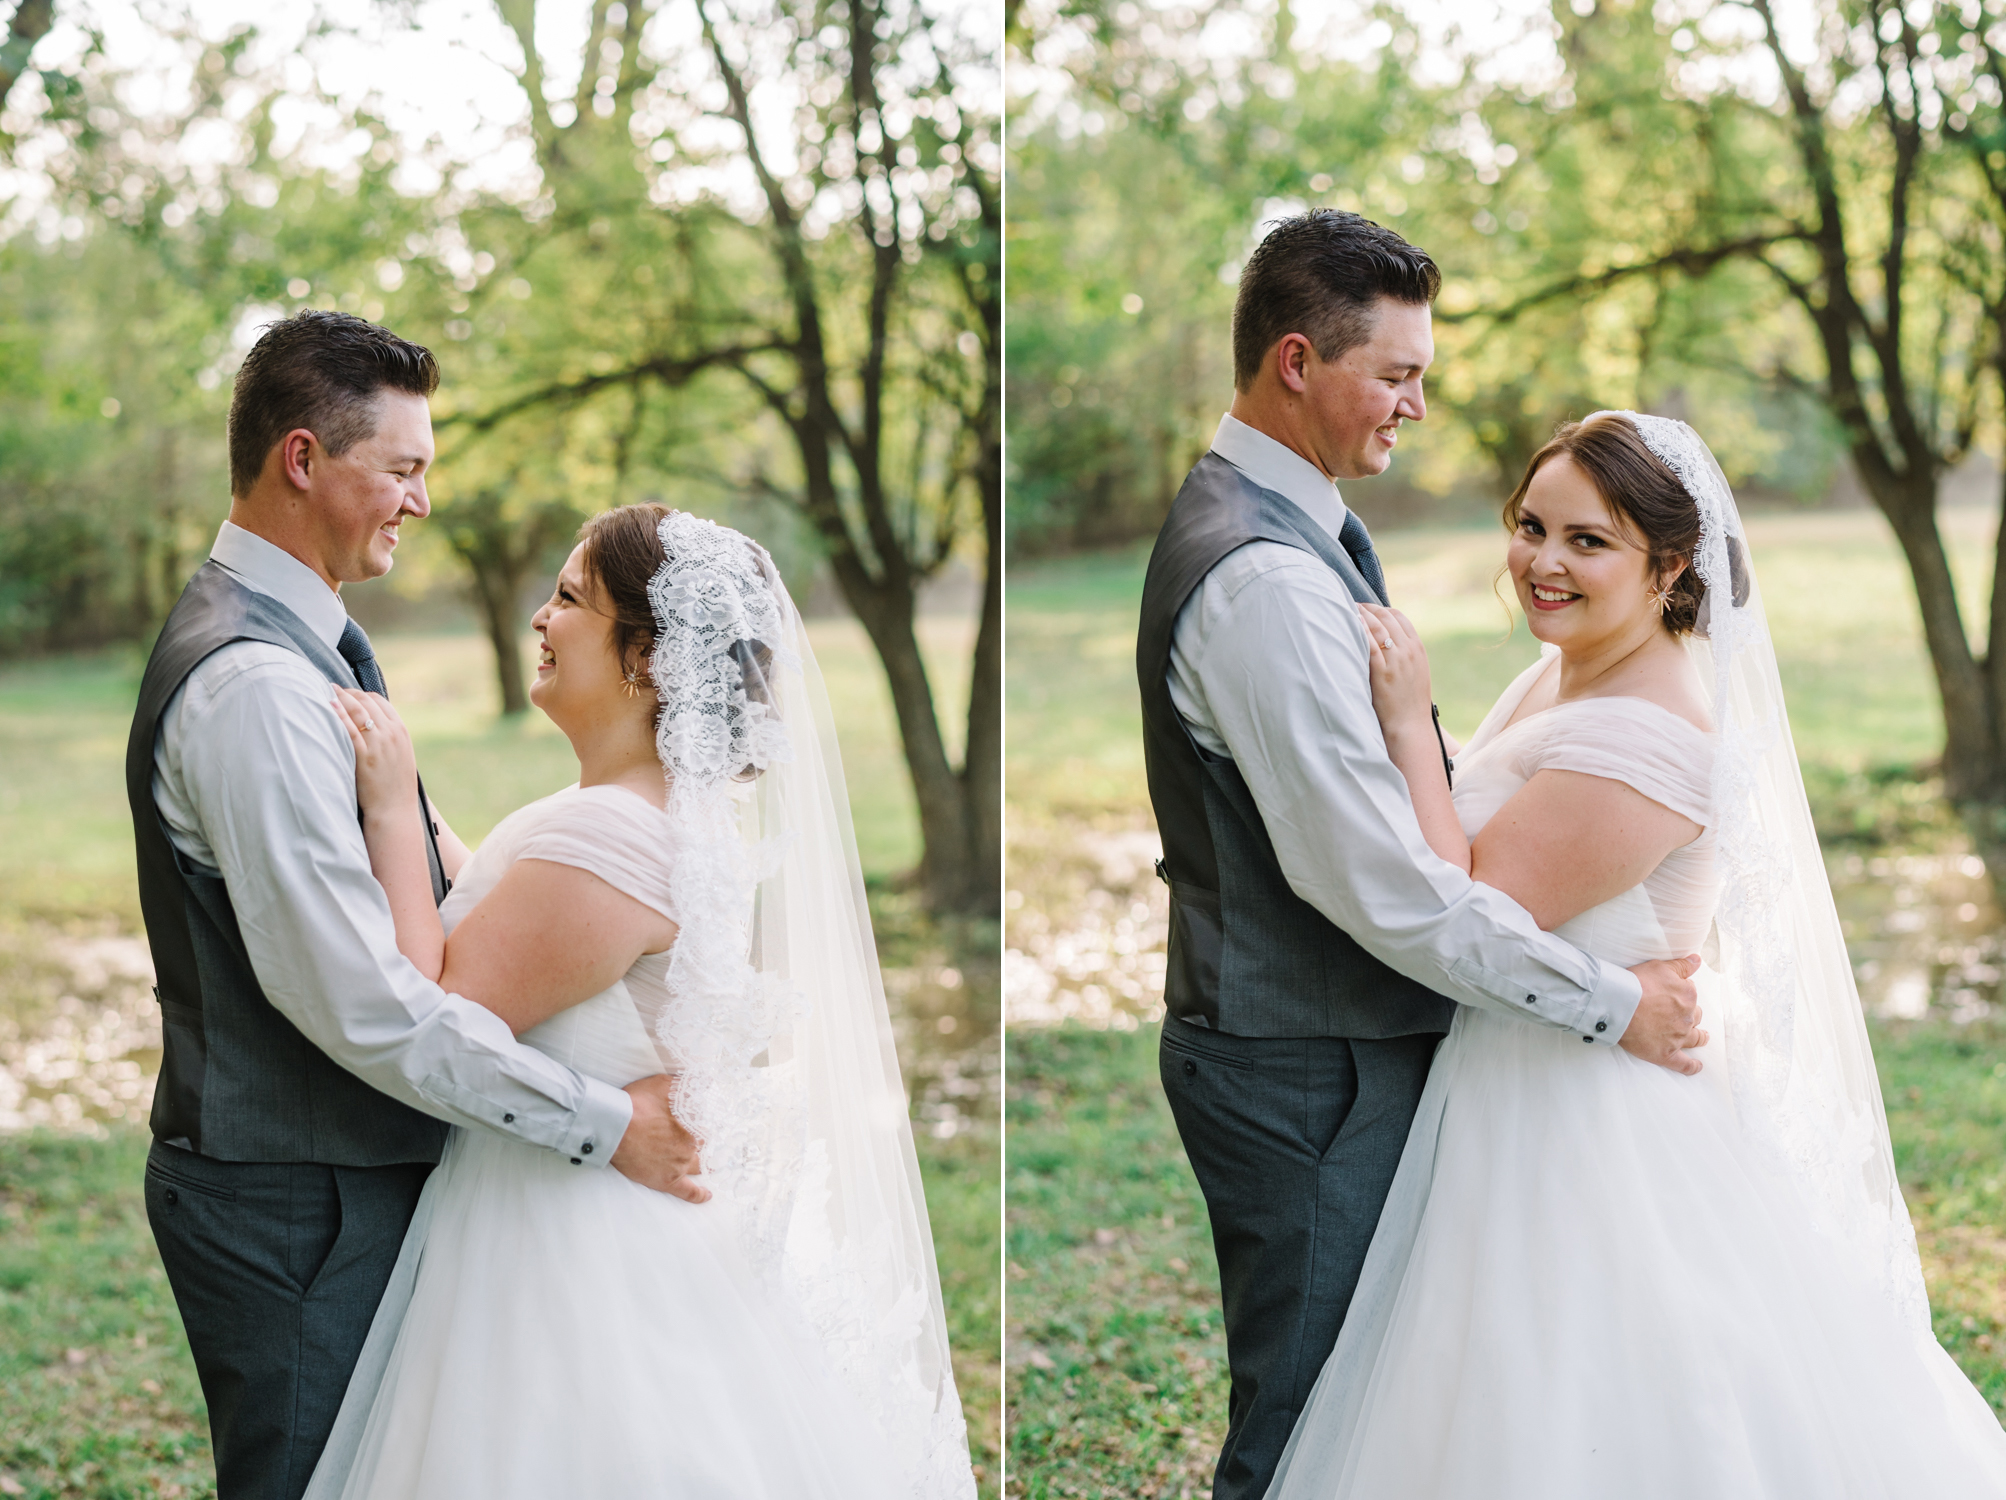 Wichita, Kansas Outdoor Wedding-Neal Dieker-Pinecrest Country Place-Wichita, Kansas Wedding Photographer-183.jpg